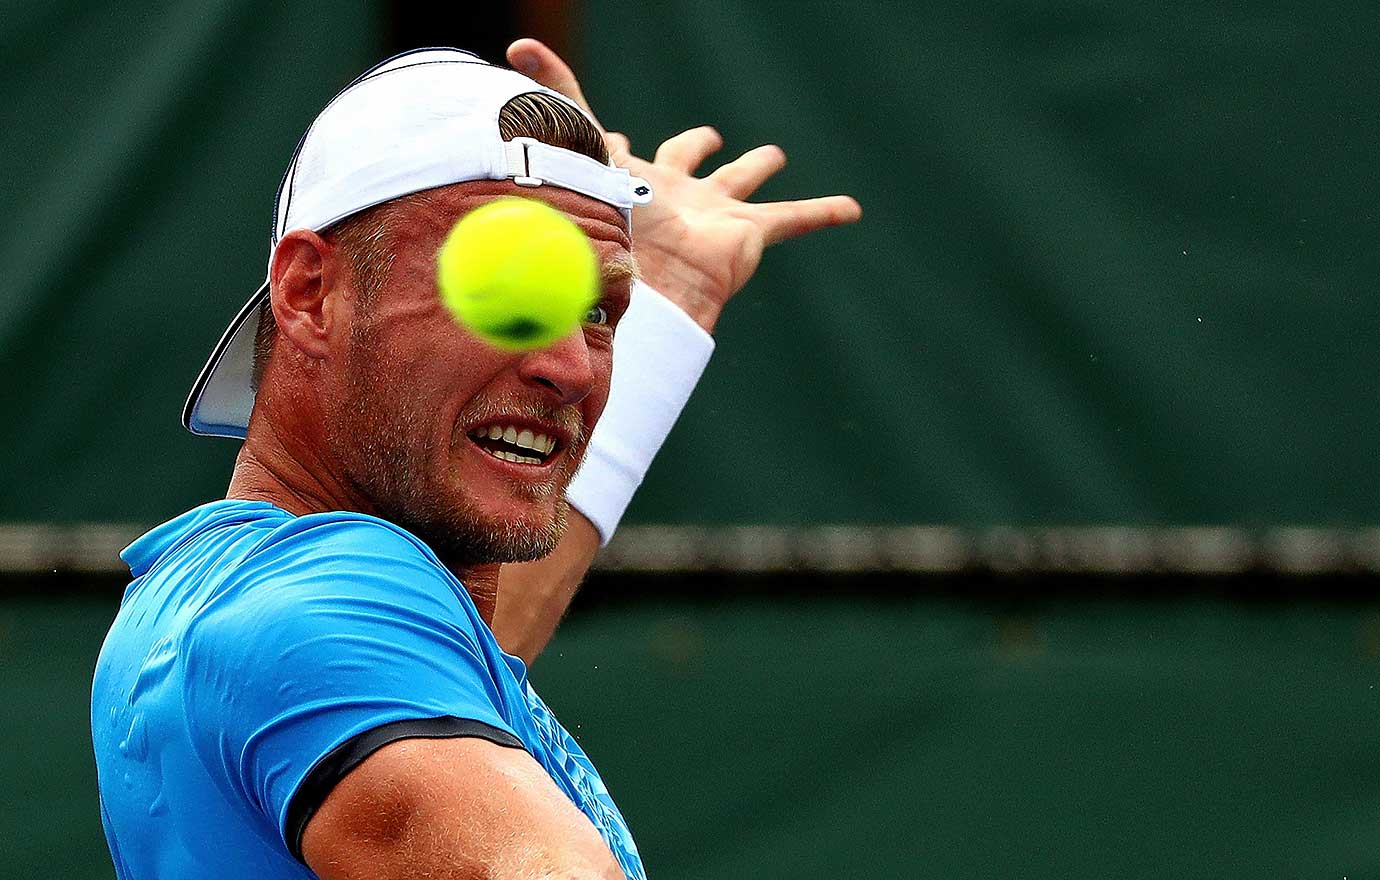 Sam Groth of Australia plays a match against Dominic Thiem of Austria during Day 5 of the Miami Open in Key Biscayne, Fla.